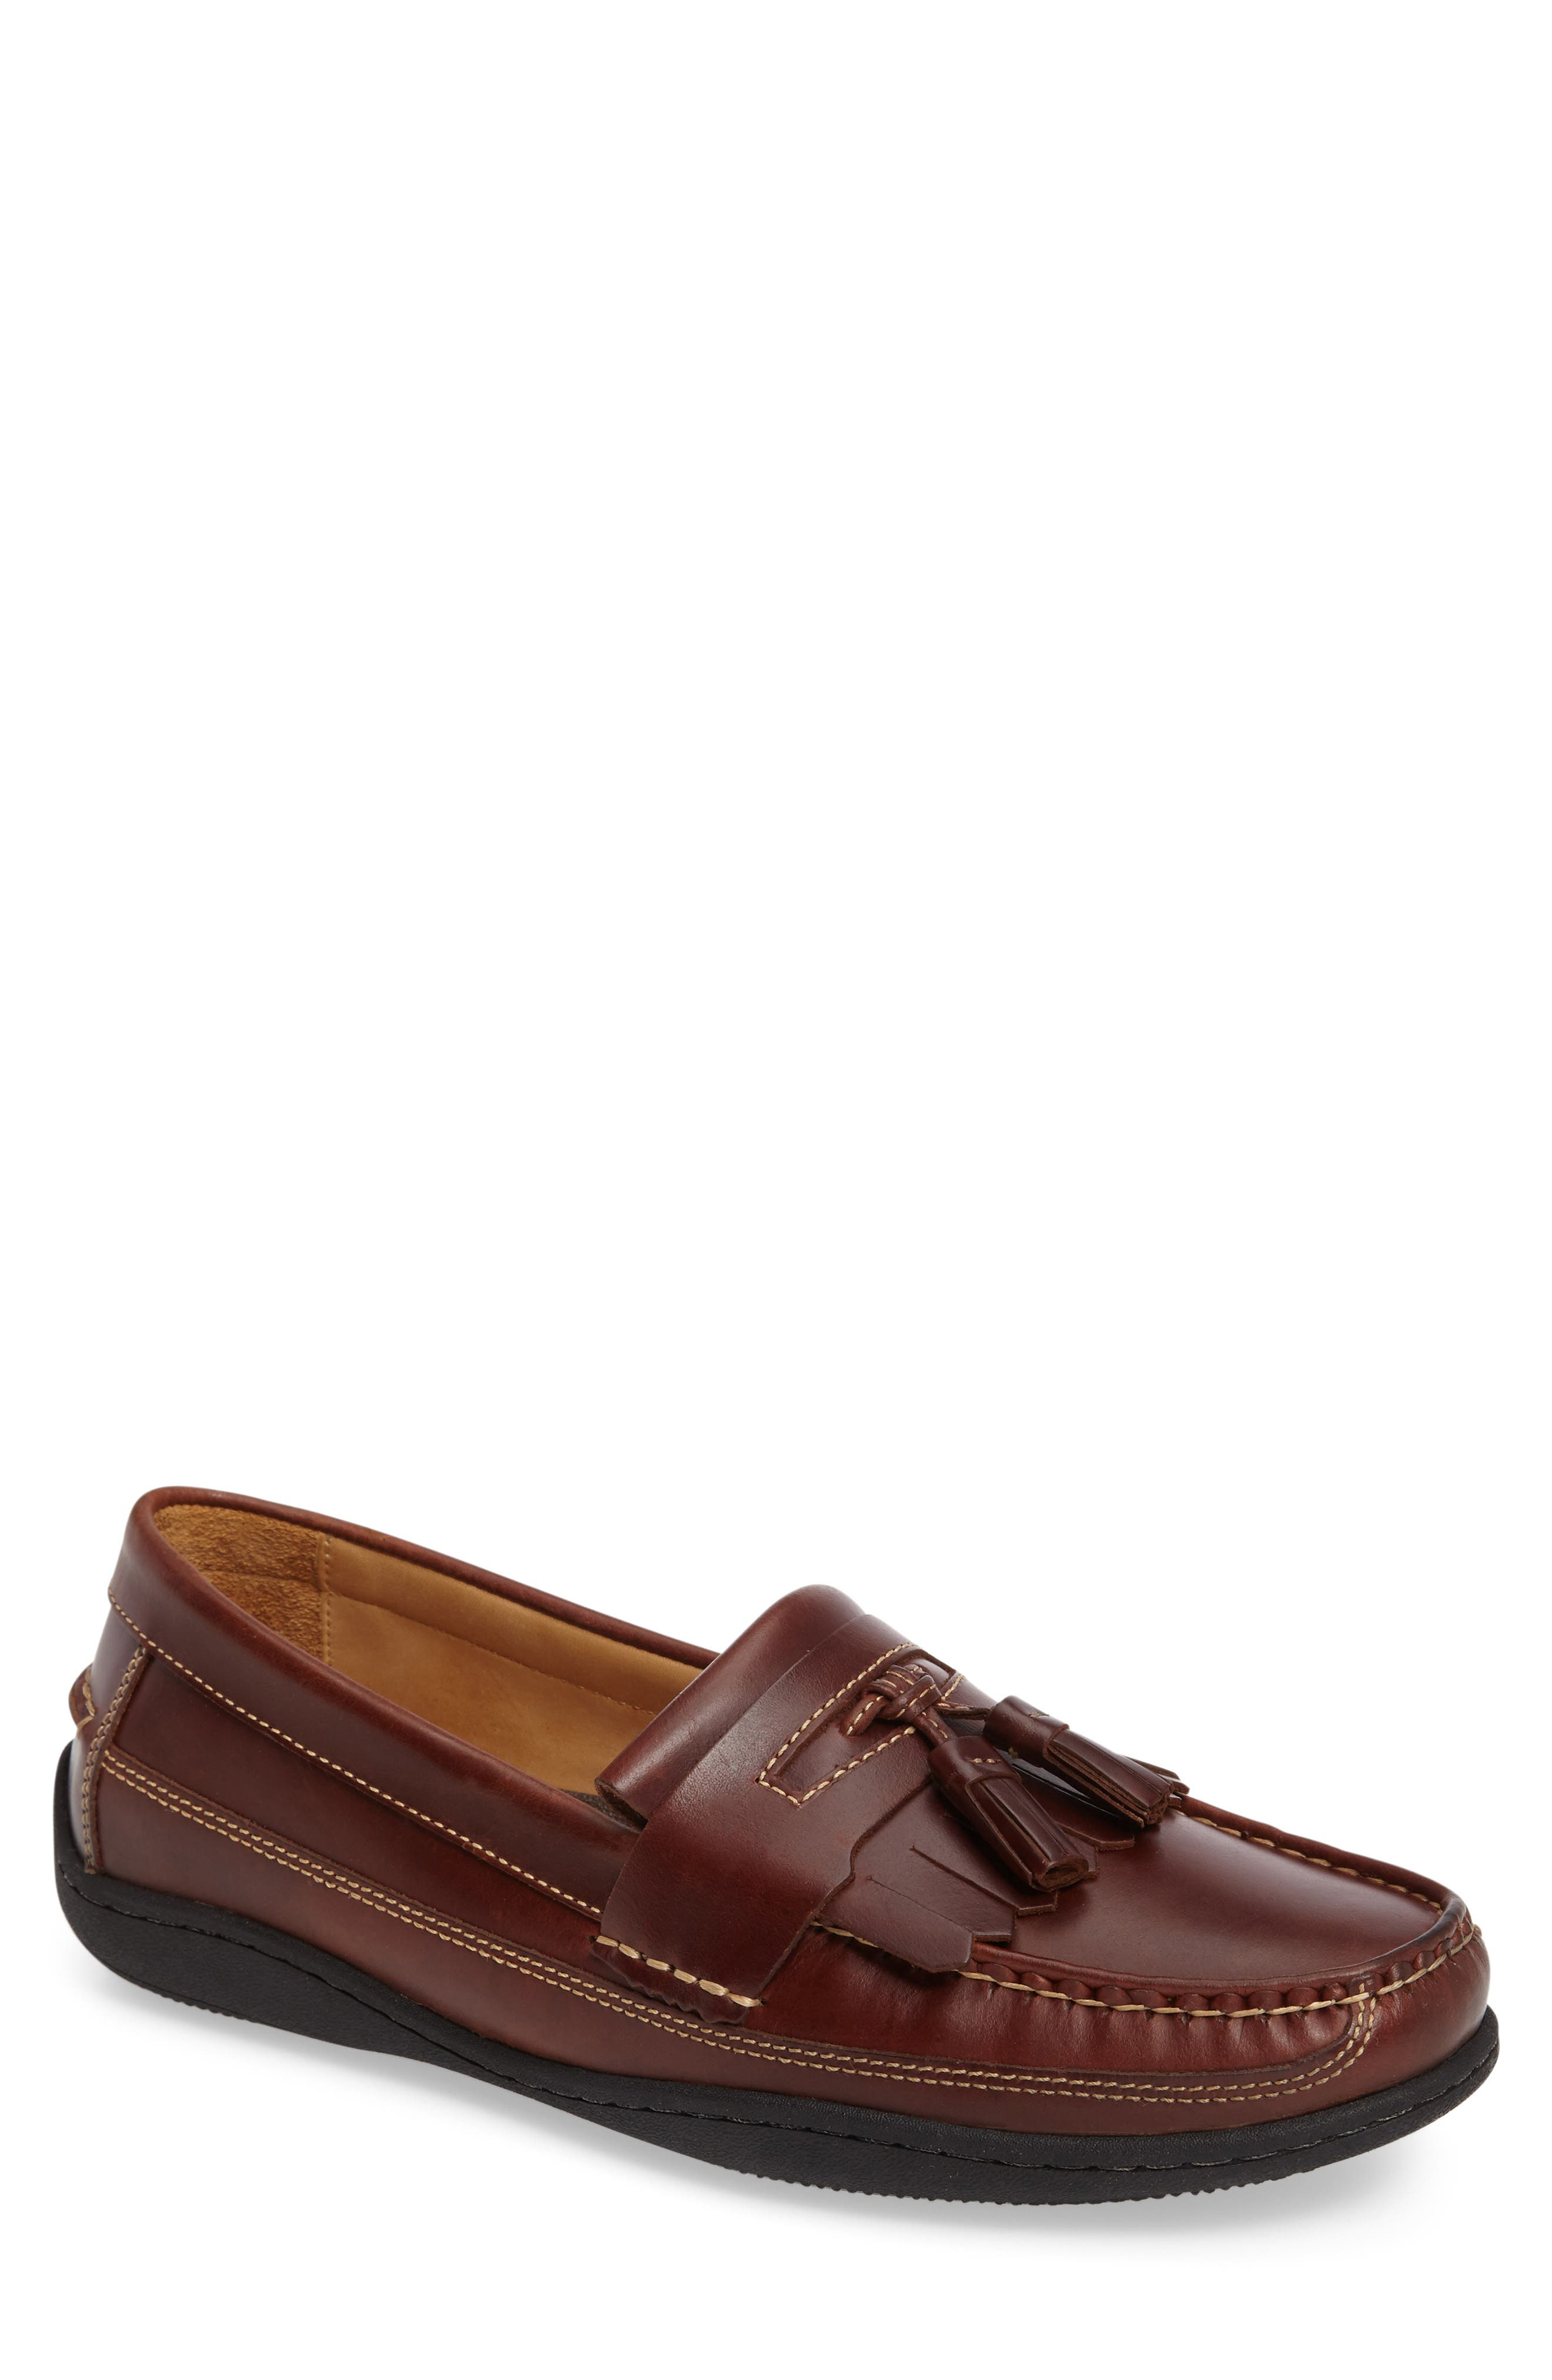 Fowler Kiltie Tassel Loafer,                             Main thumbnail 1, color,                             Mahogany Leather